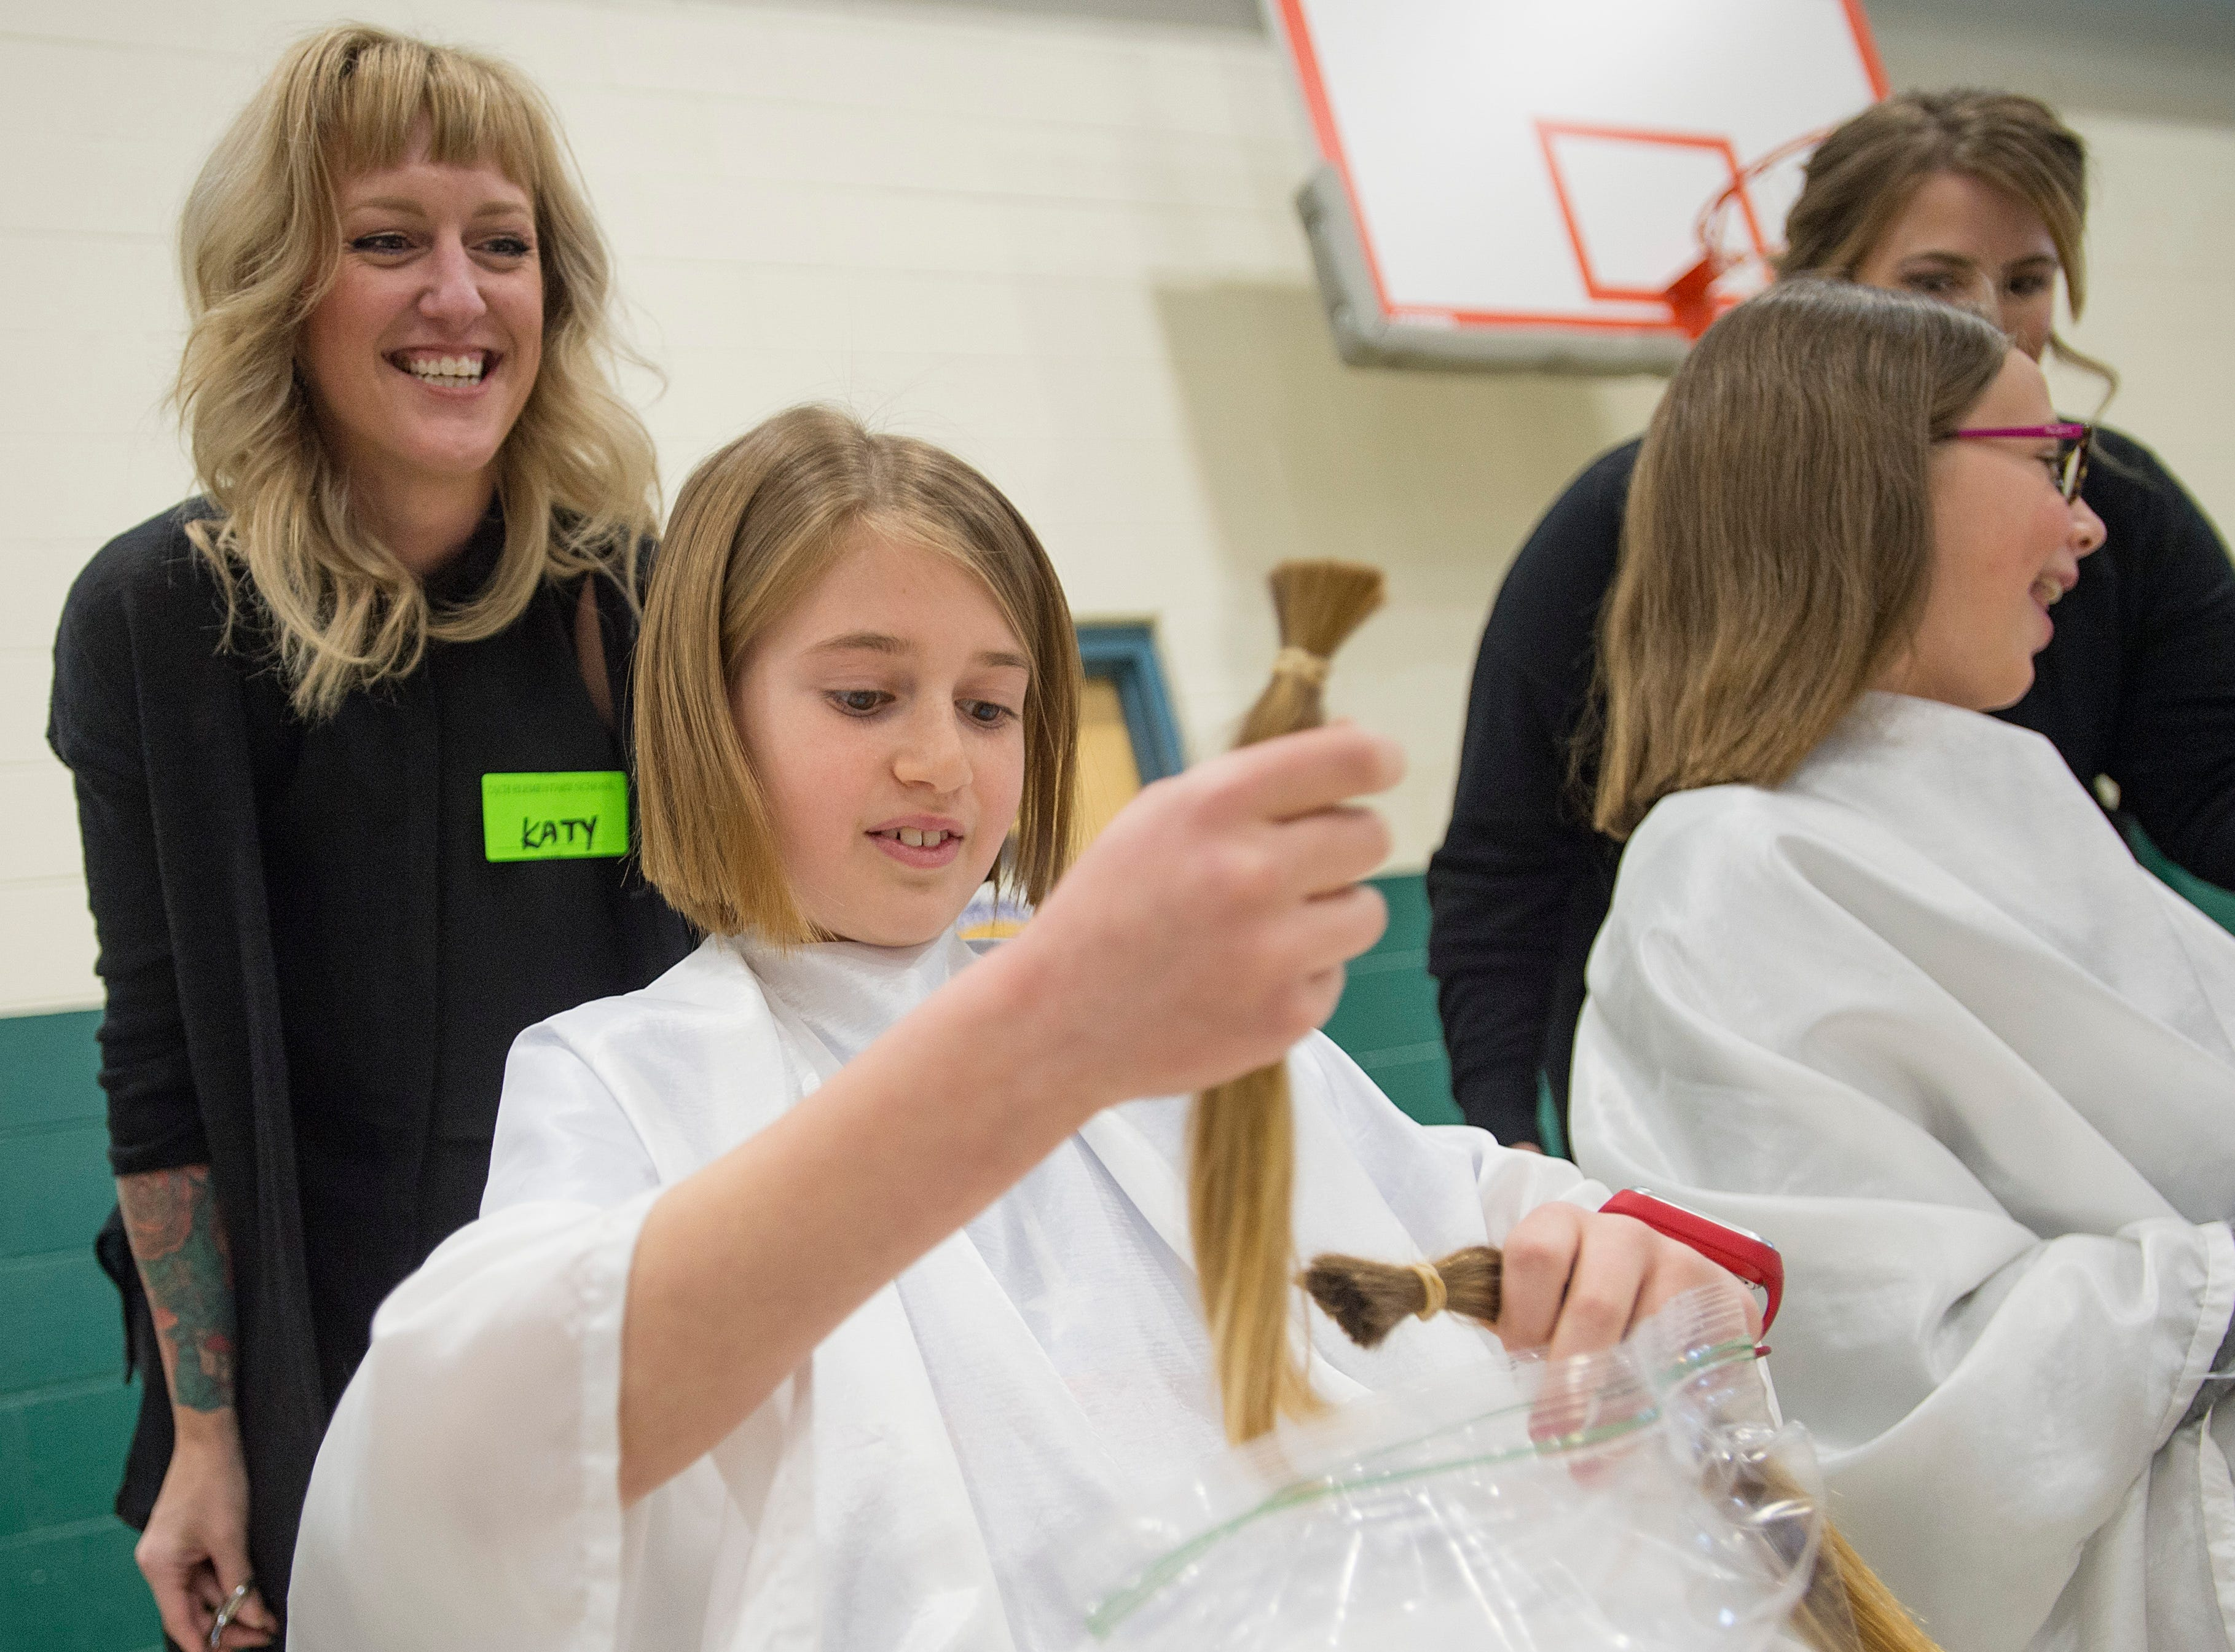 Jason Mynatt secures bundles of his hair in a bag after a hair donation assembly at Zach Elementary School on Friday, January 26, 2018. Mynatt, a fourth grader, grew his hair out for three years just so he could donate to Locks of Love.